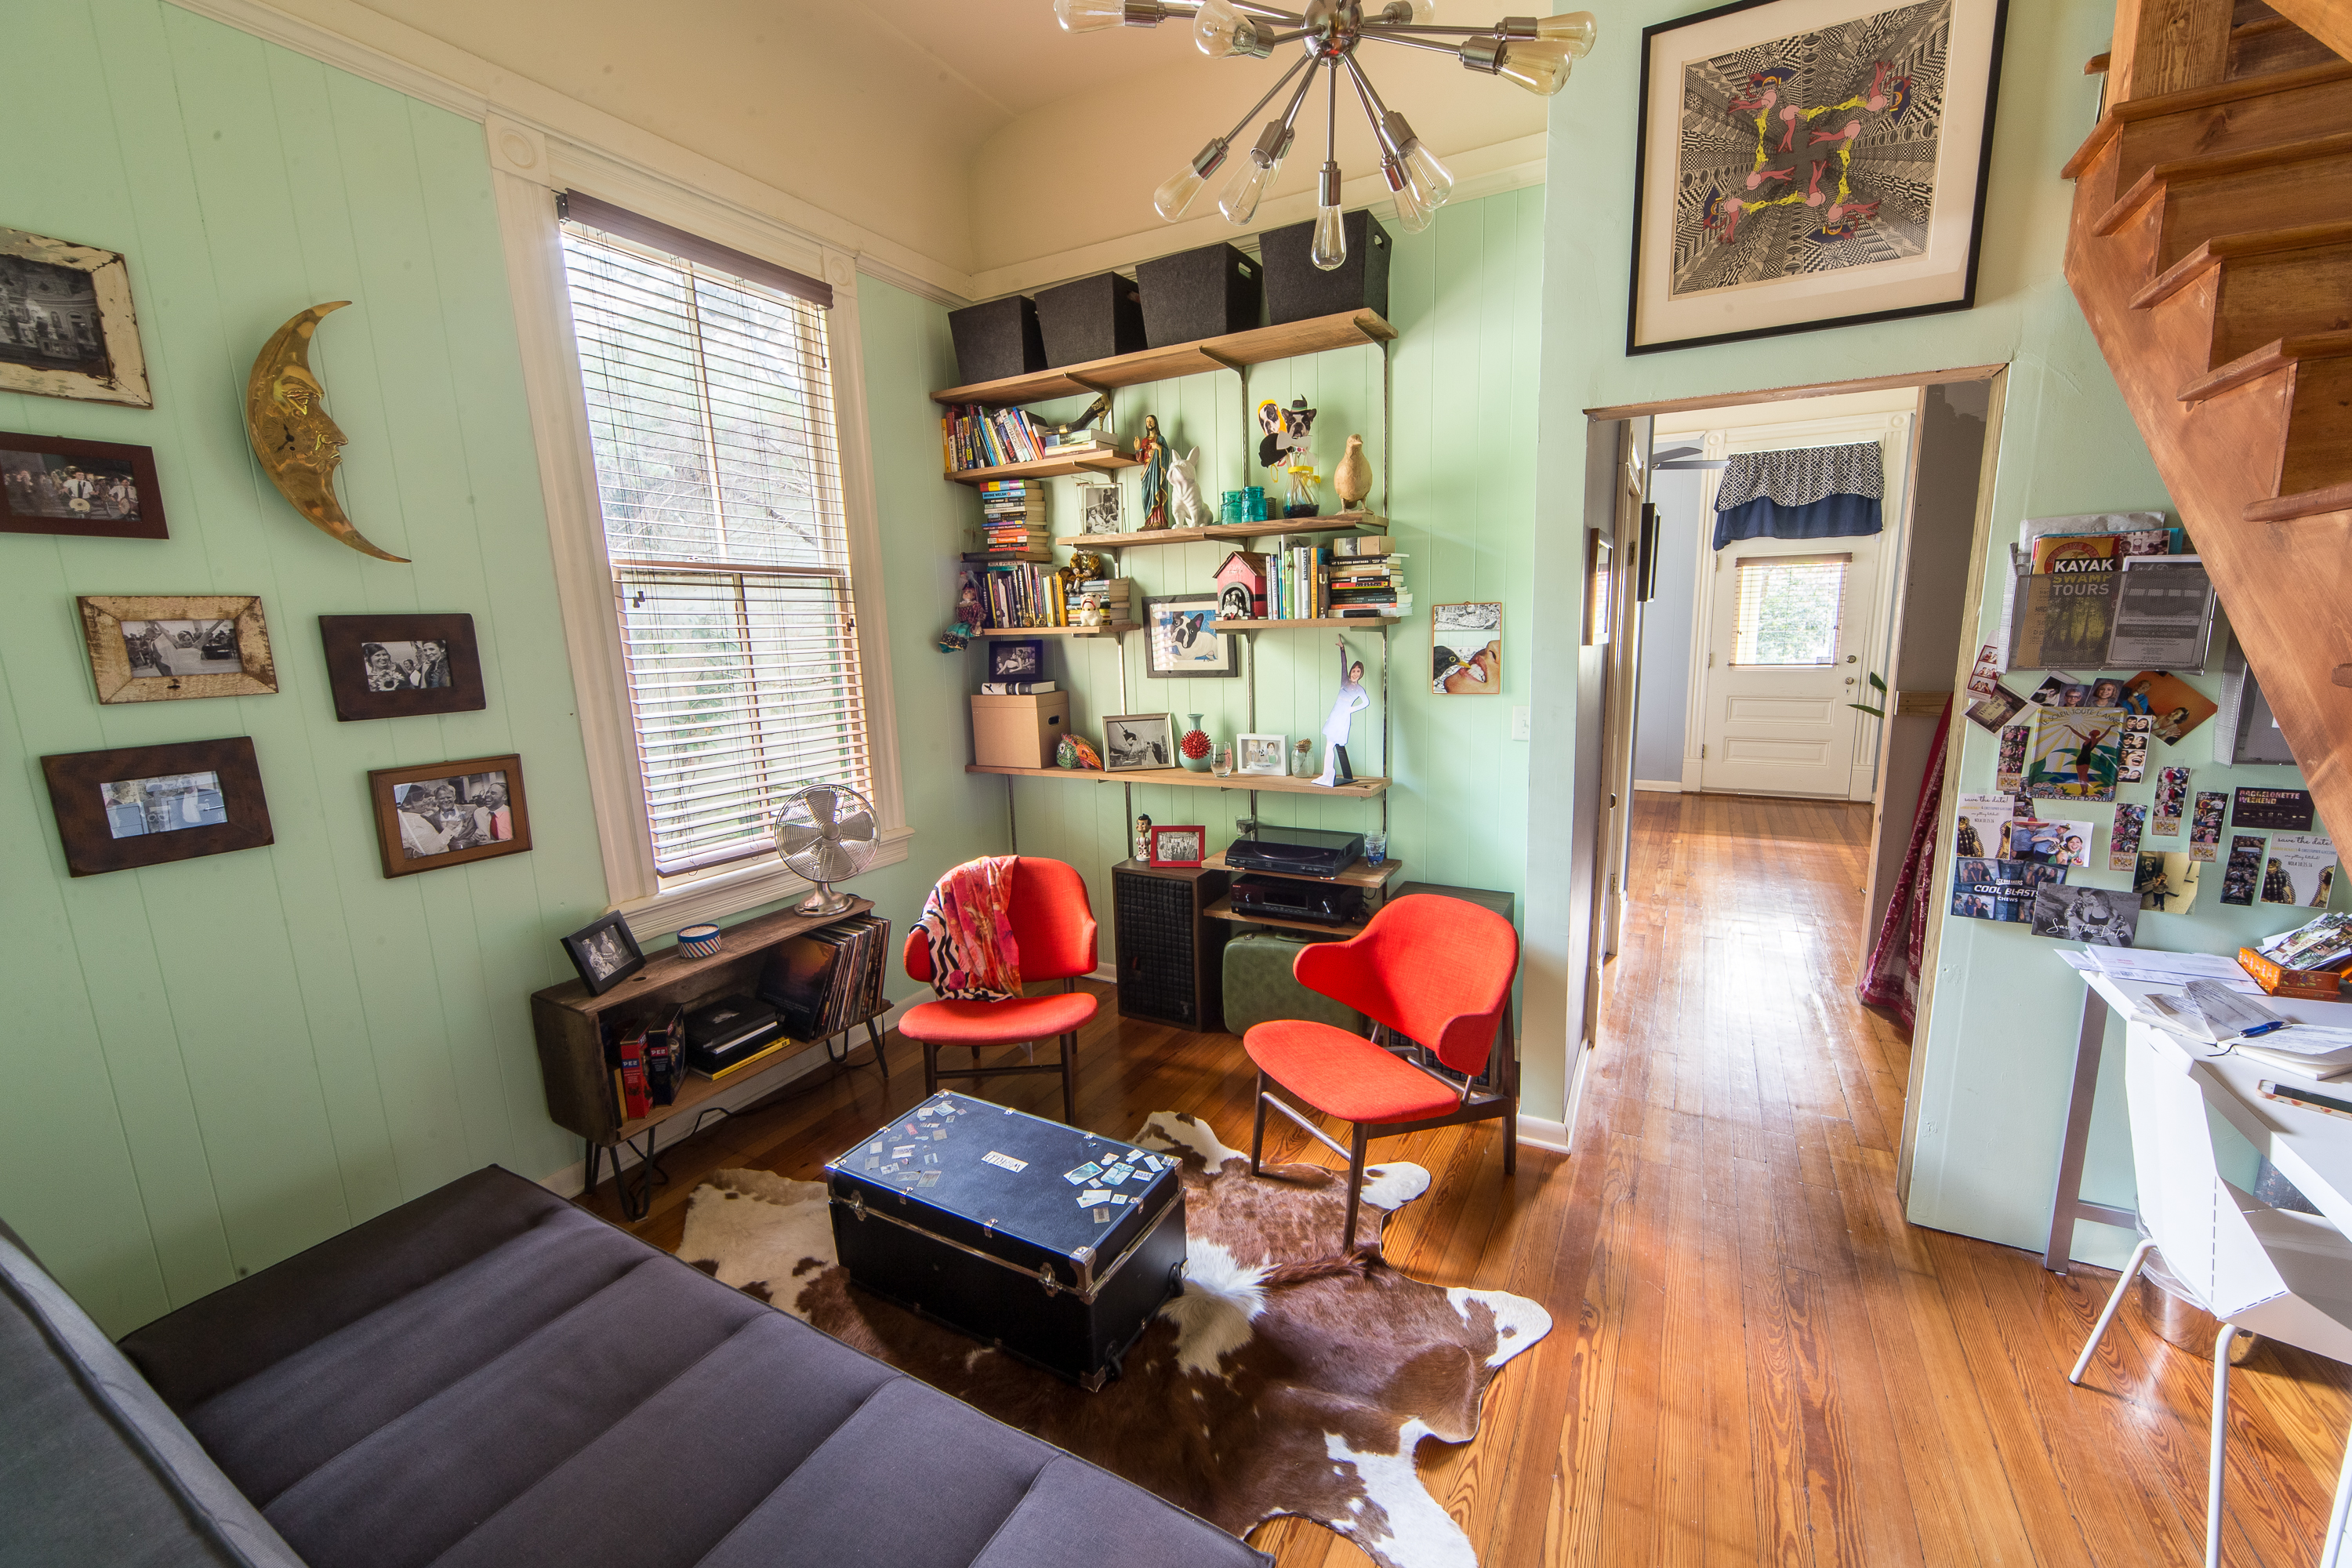 Home Decor New Orleans: New Orleans Interior Design